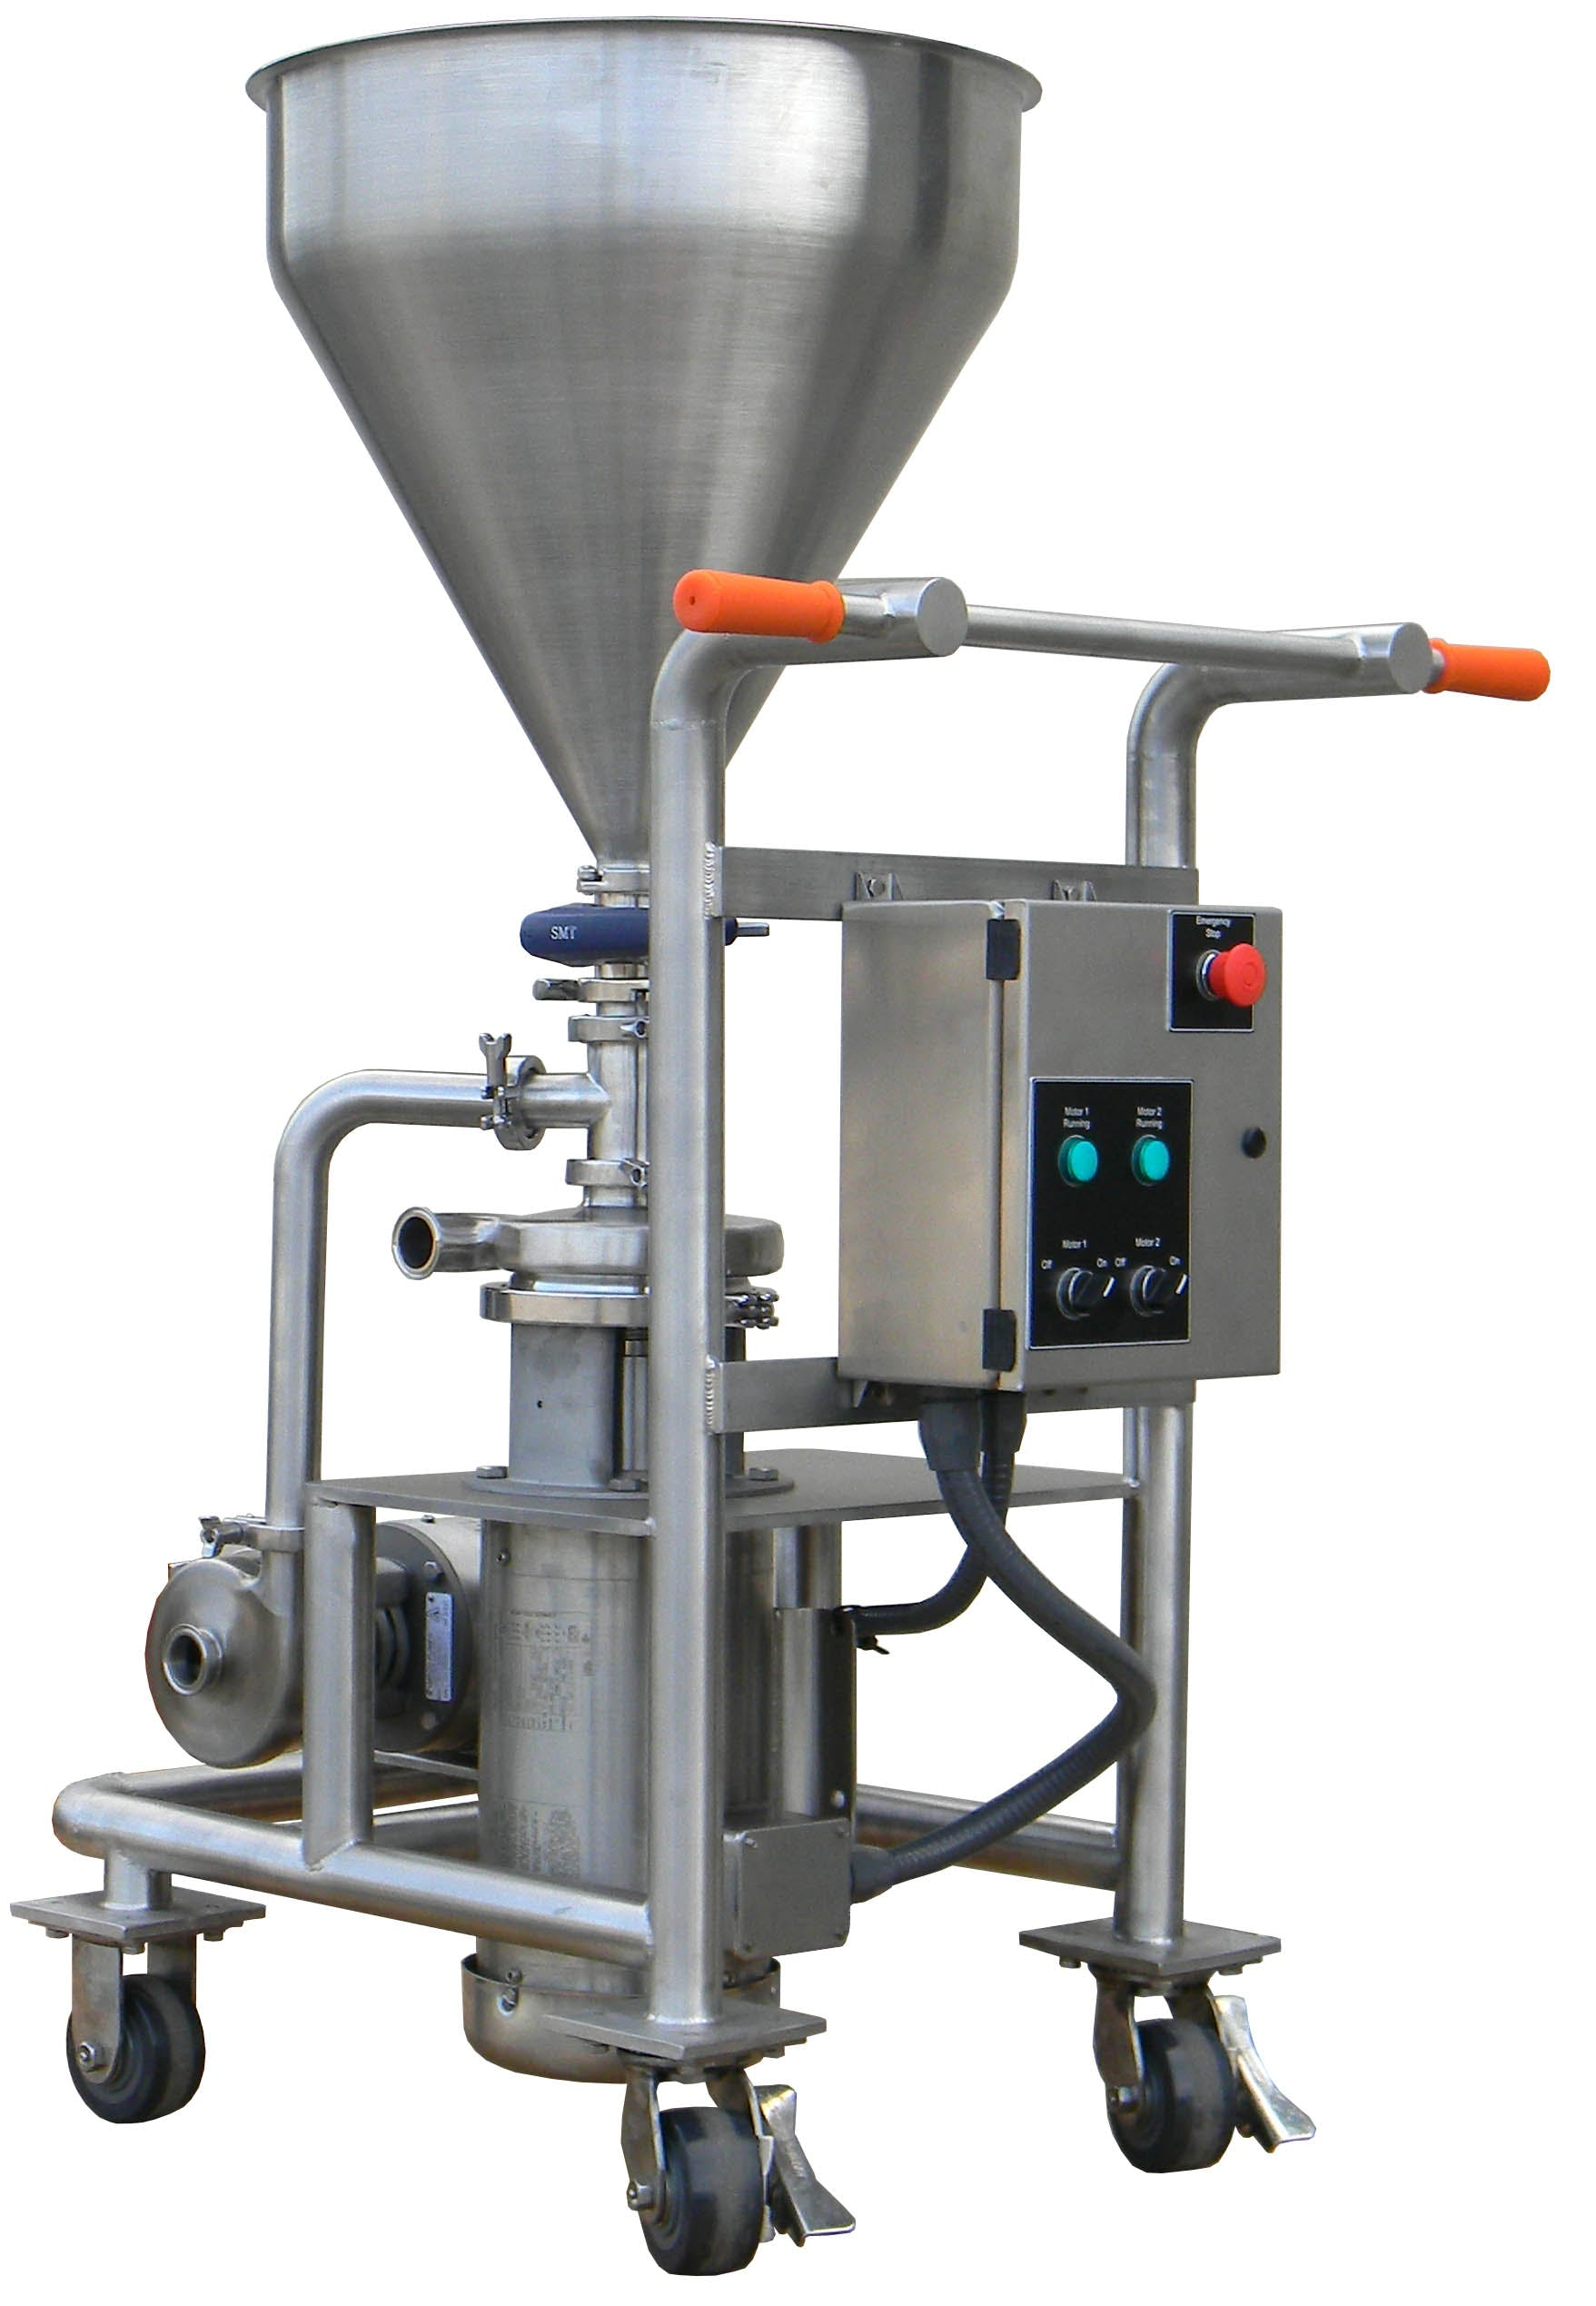 AC+ Dry Blender  Powder blending equipment sold by Ampco Pumps Co.